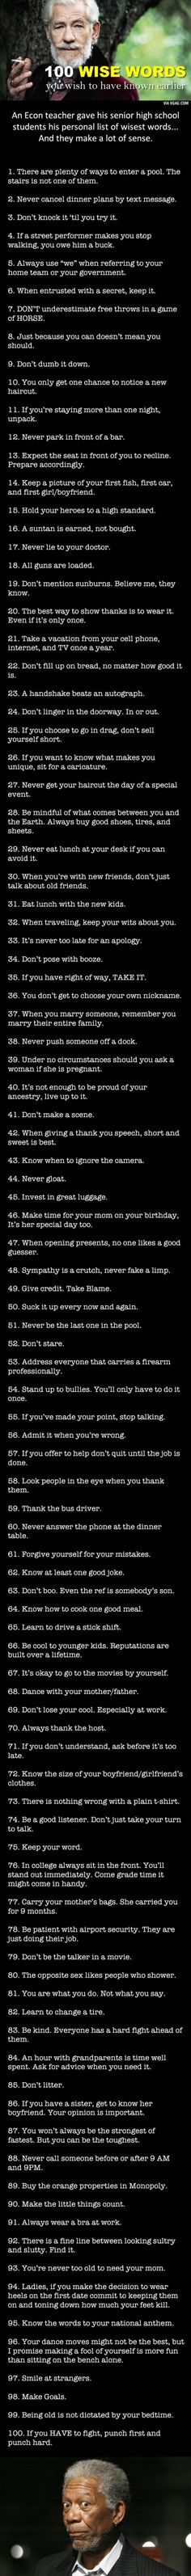 100 Wise Words « Bits Of Wisdo